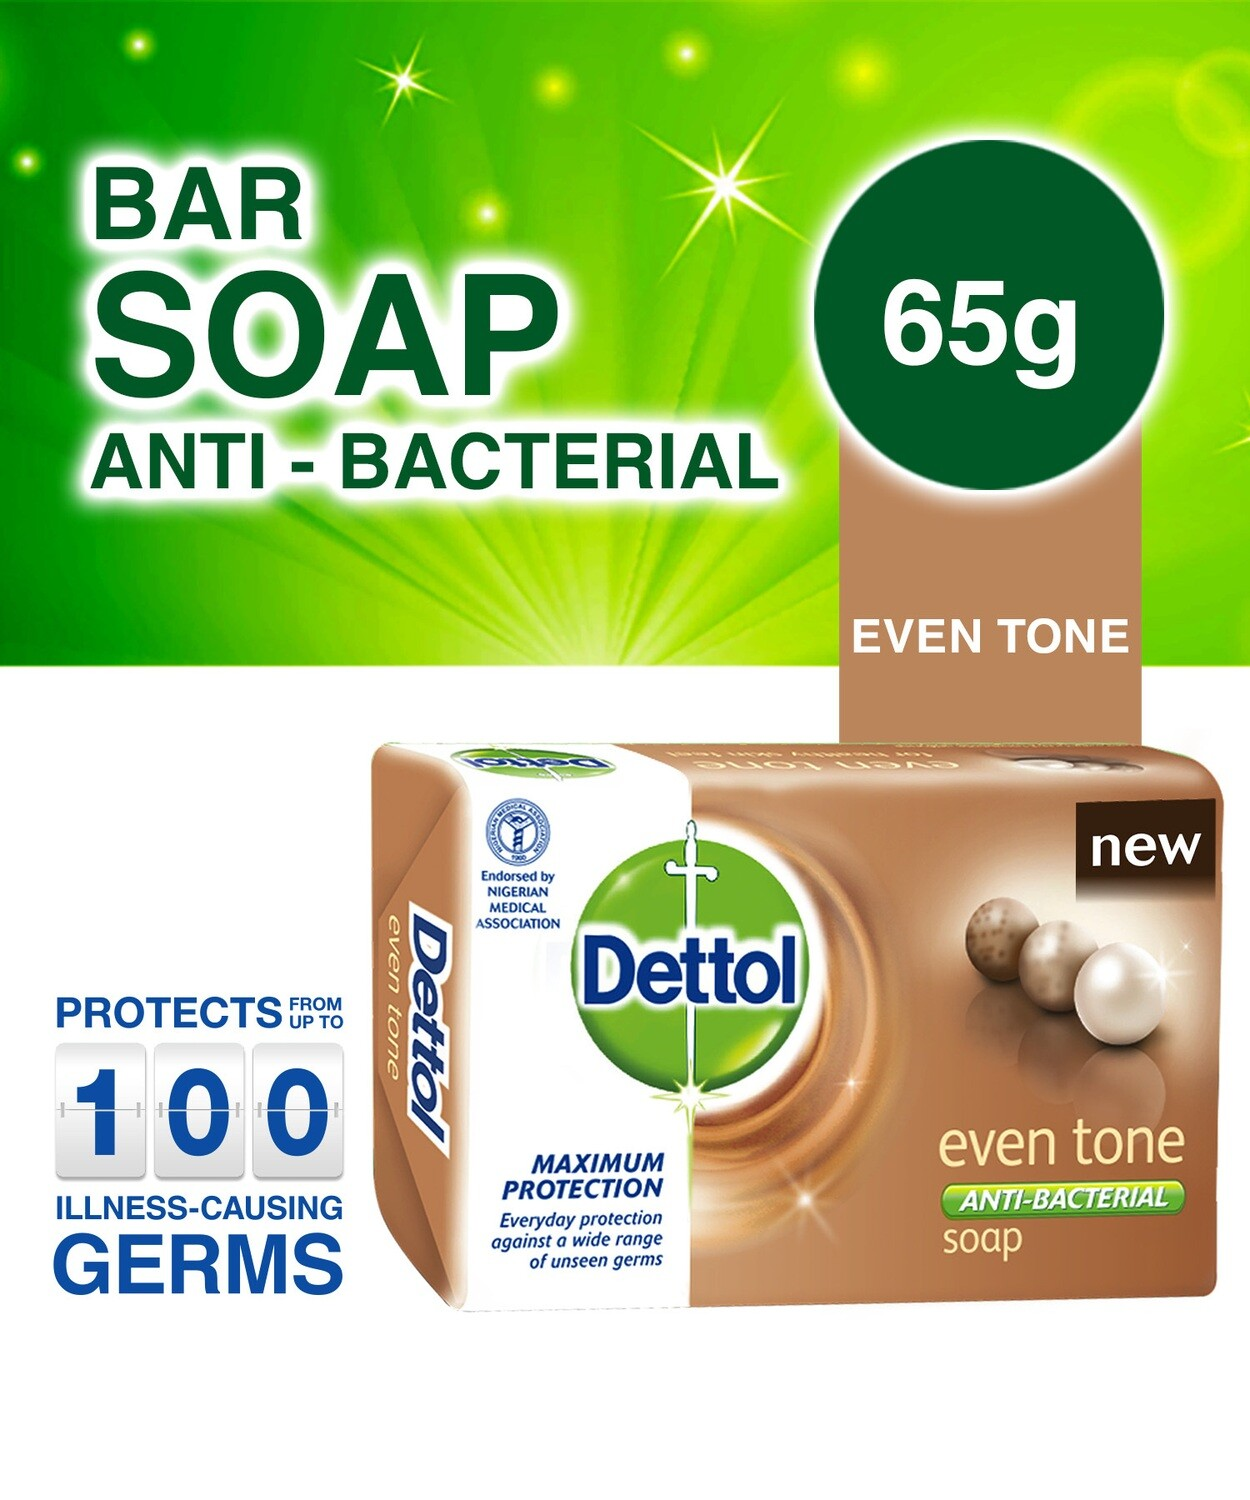 DETTOL ANTI-BACTERIAL EVEN TONE SOAP 65G